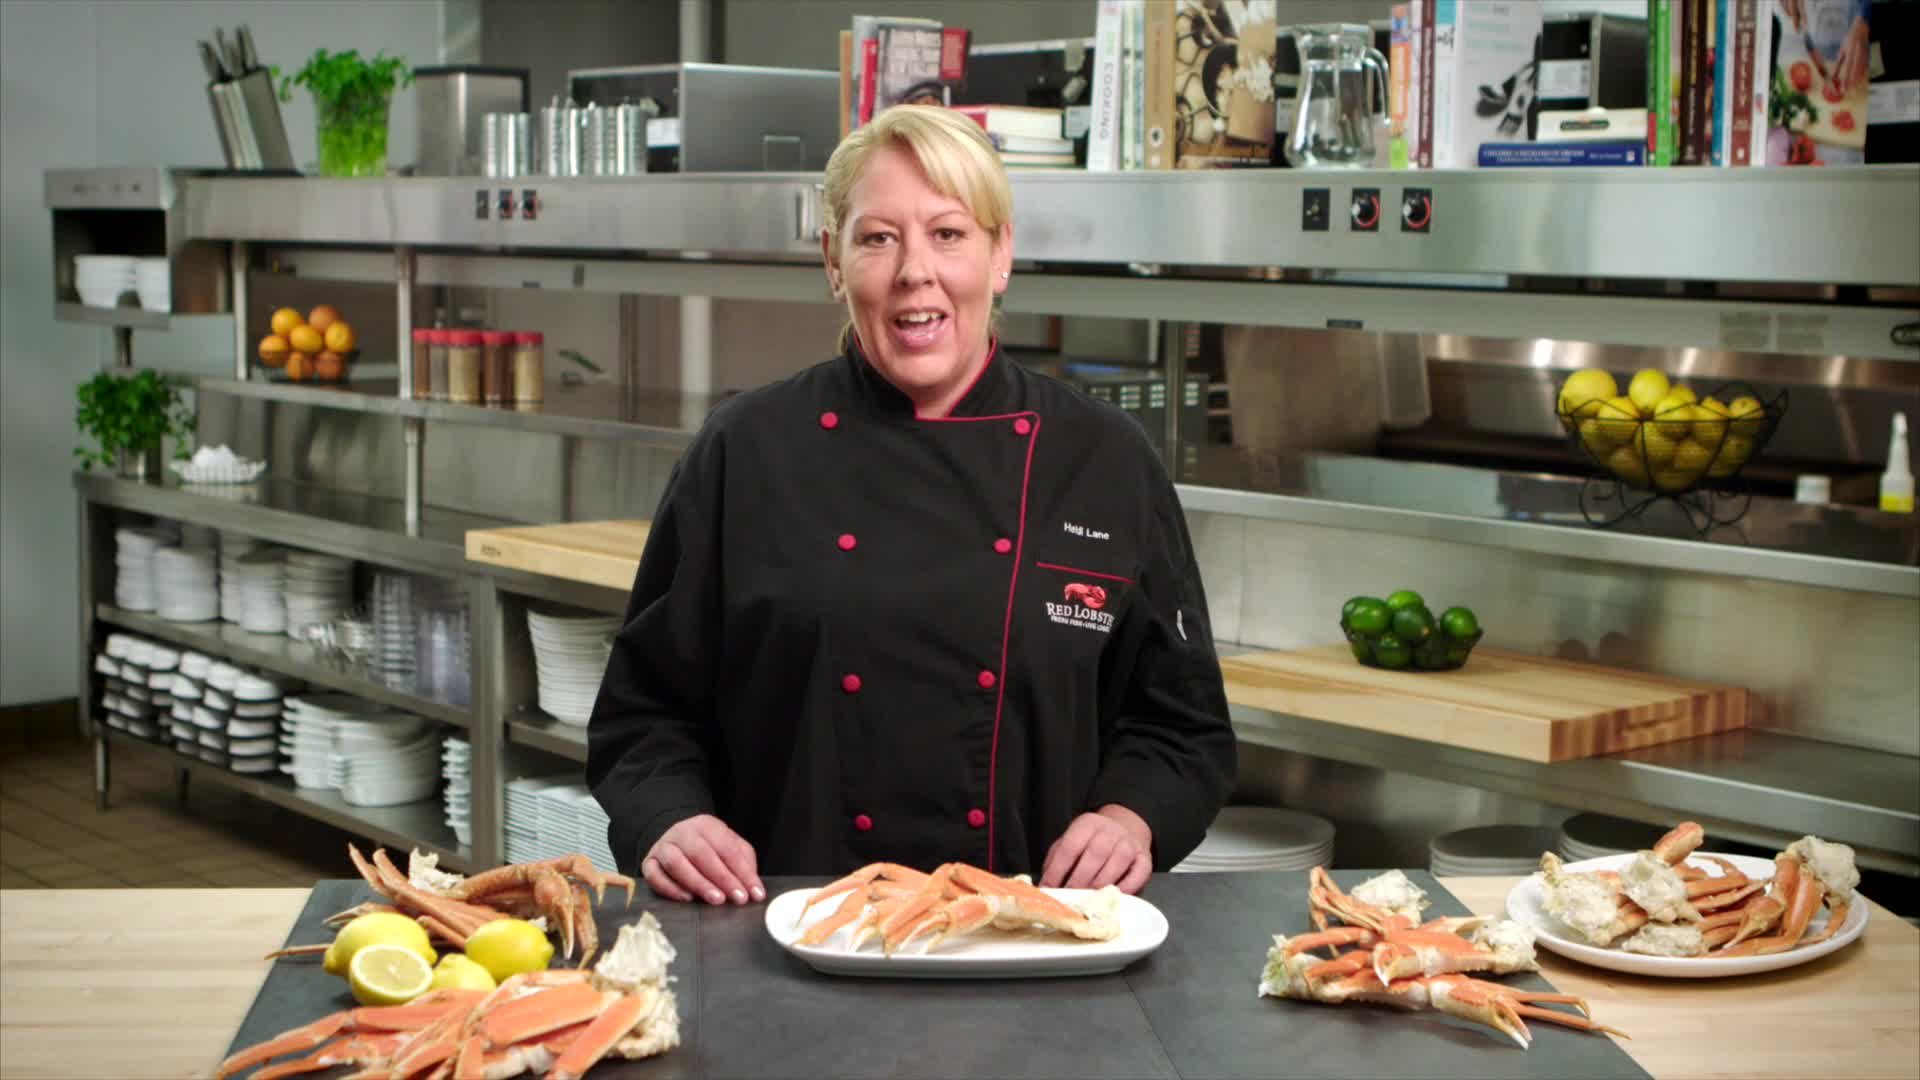 Red Lobster Chef Heidi gives some tips and tricks on how to make crab cracking a snap!